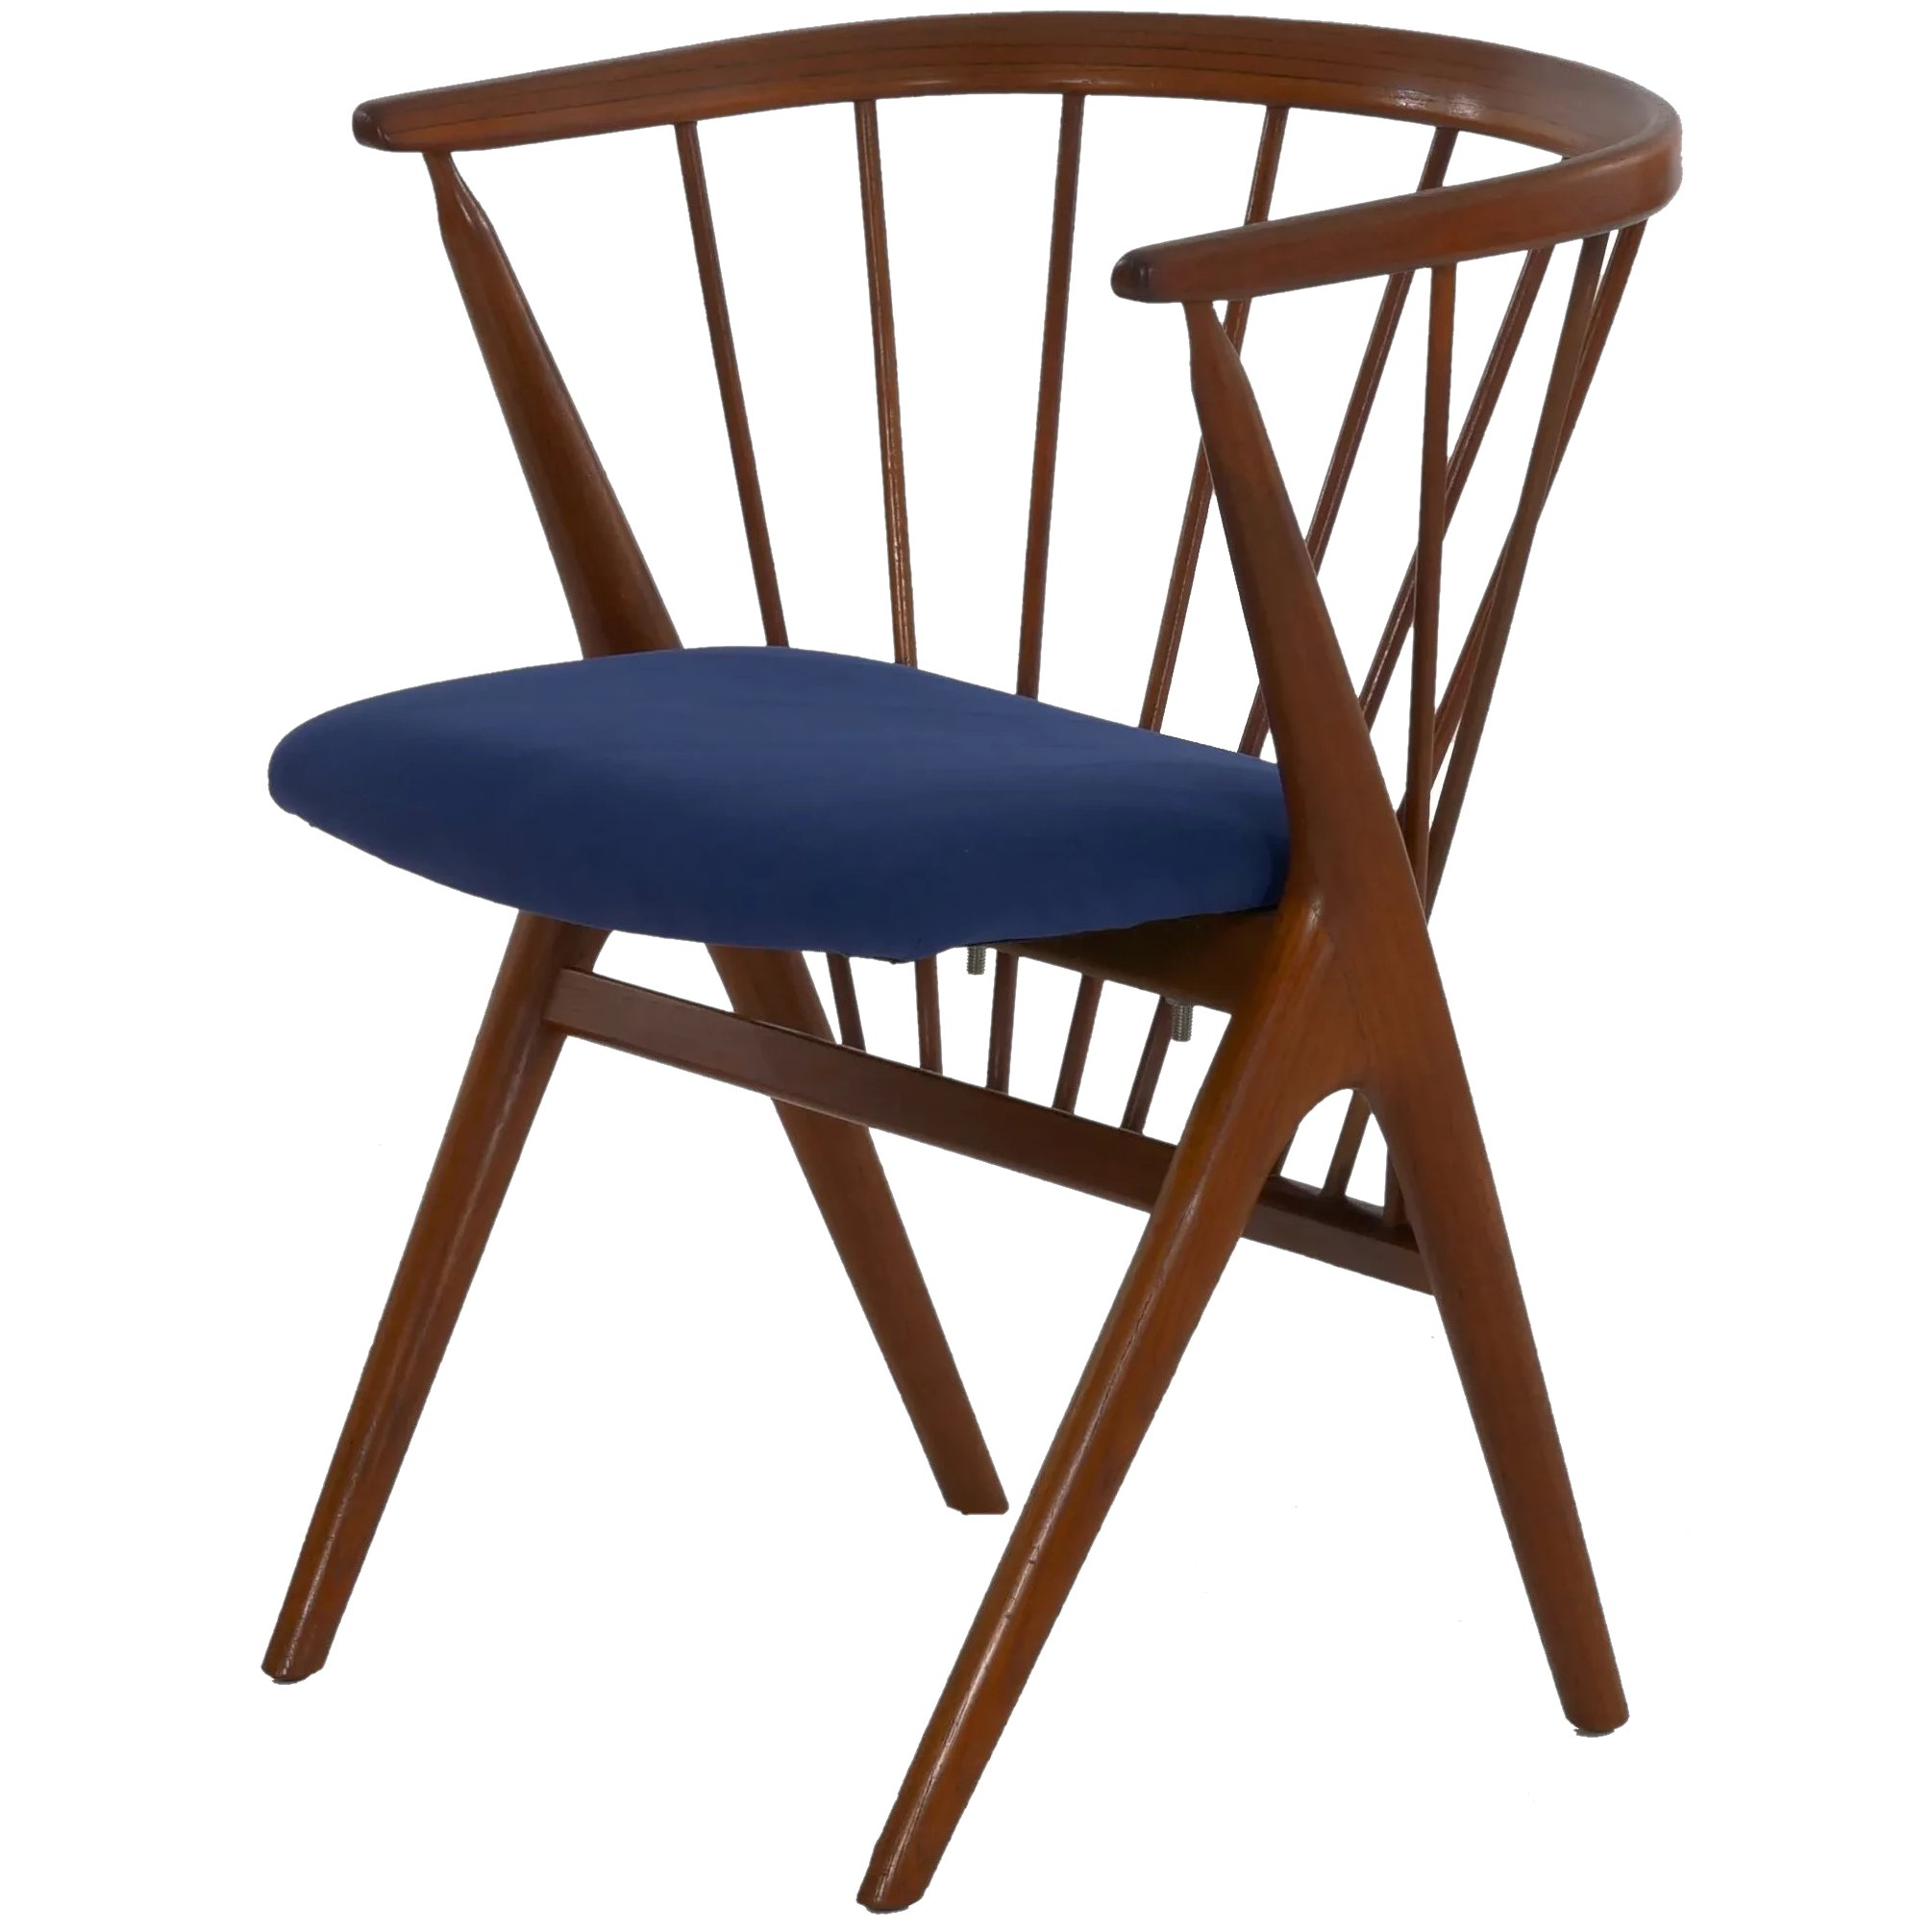 Danish Mid Century Modern Spindle Back Arm Chair No 8 By Helge Silla Ltd Ruby Lane